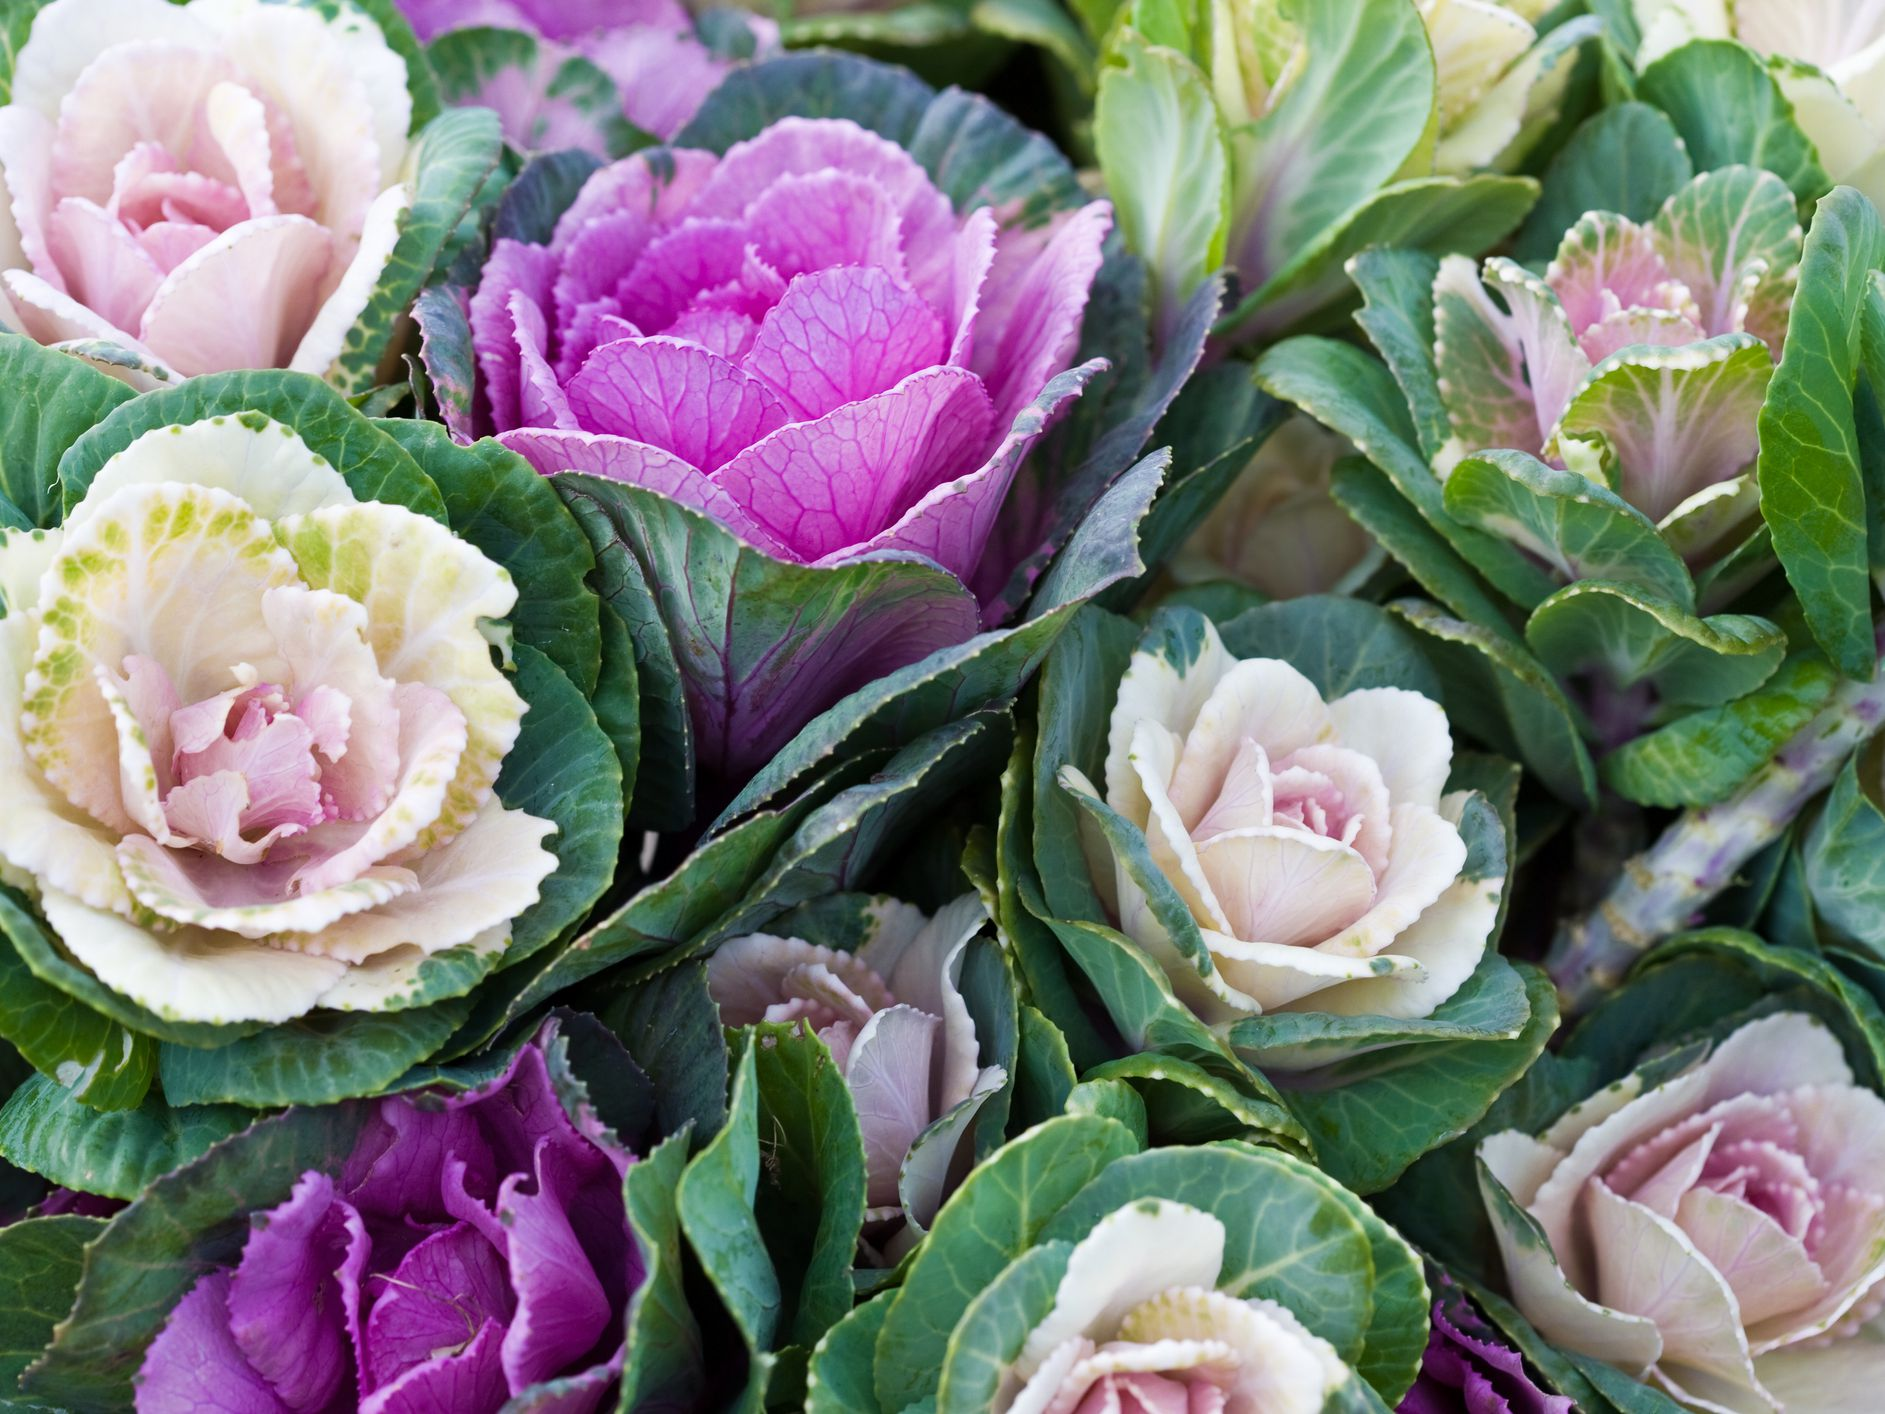 How to Grow and Care for Ornamental Cabbage